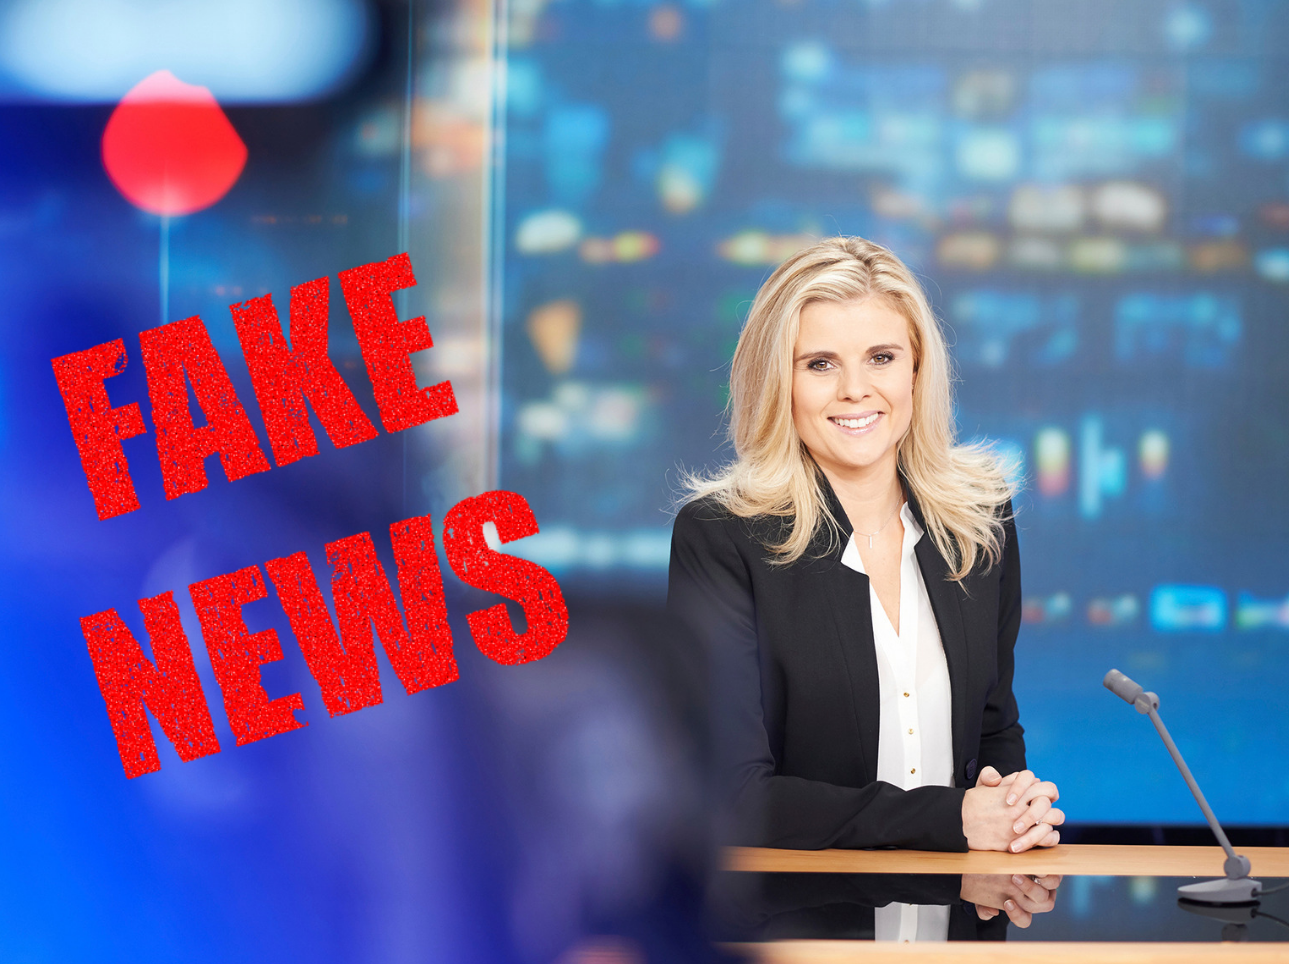 Fake news : les J.T. contre-attaquent ! © Limet/RTL